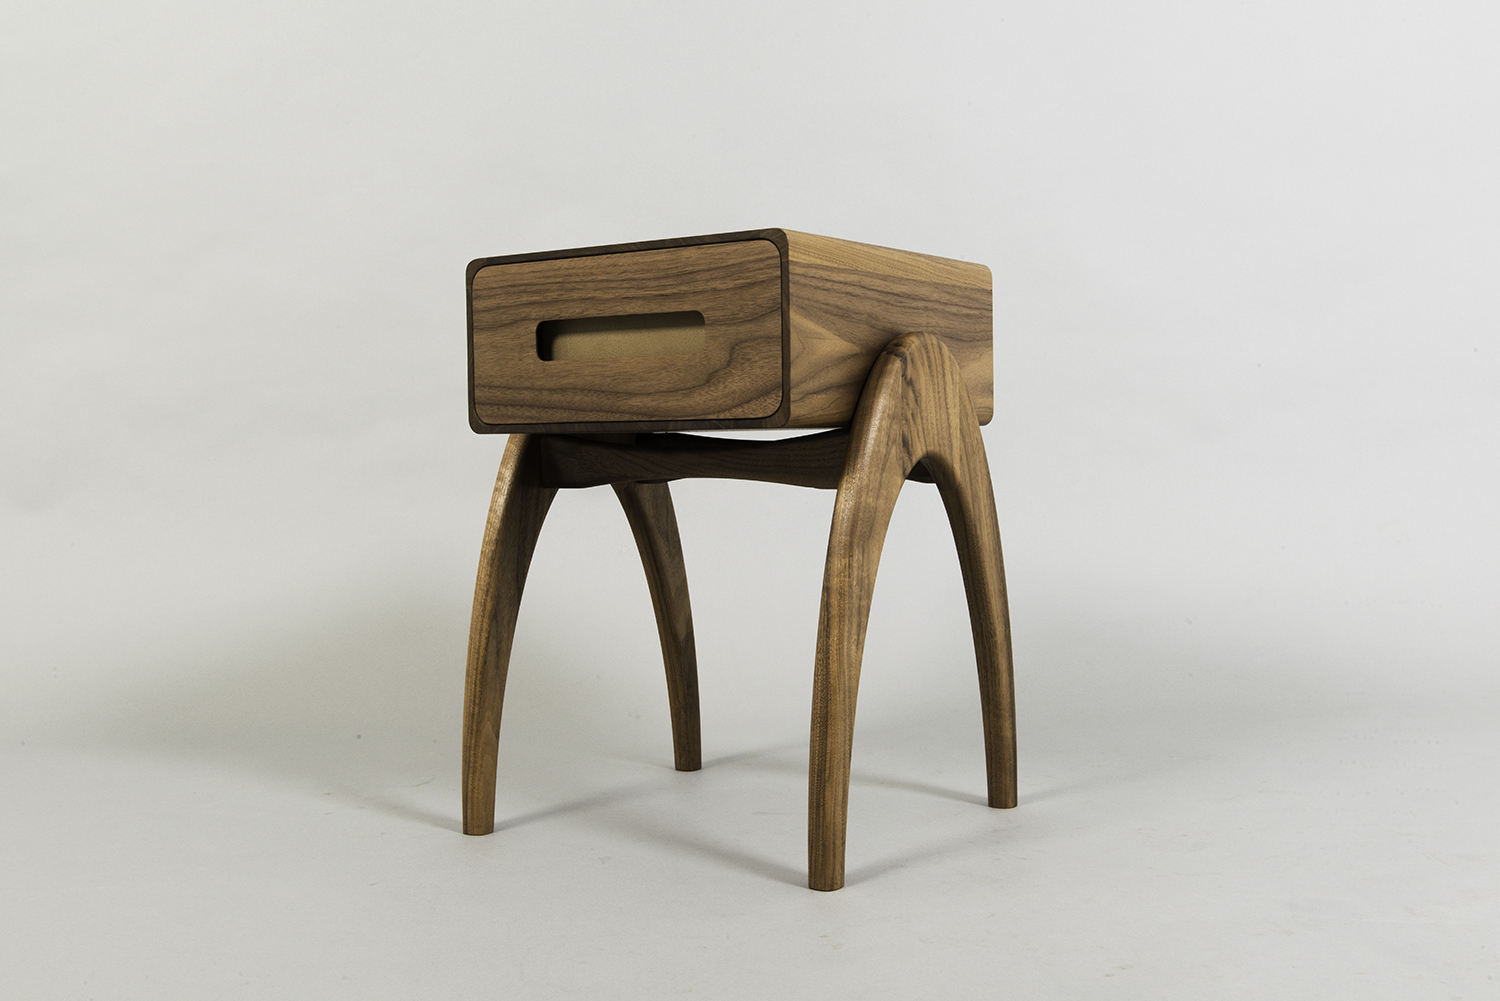 Retrospect Sidetable by Alan Flannery Furniture Design low6.jpg